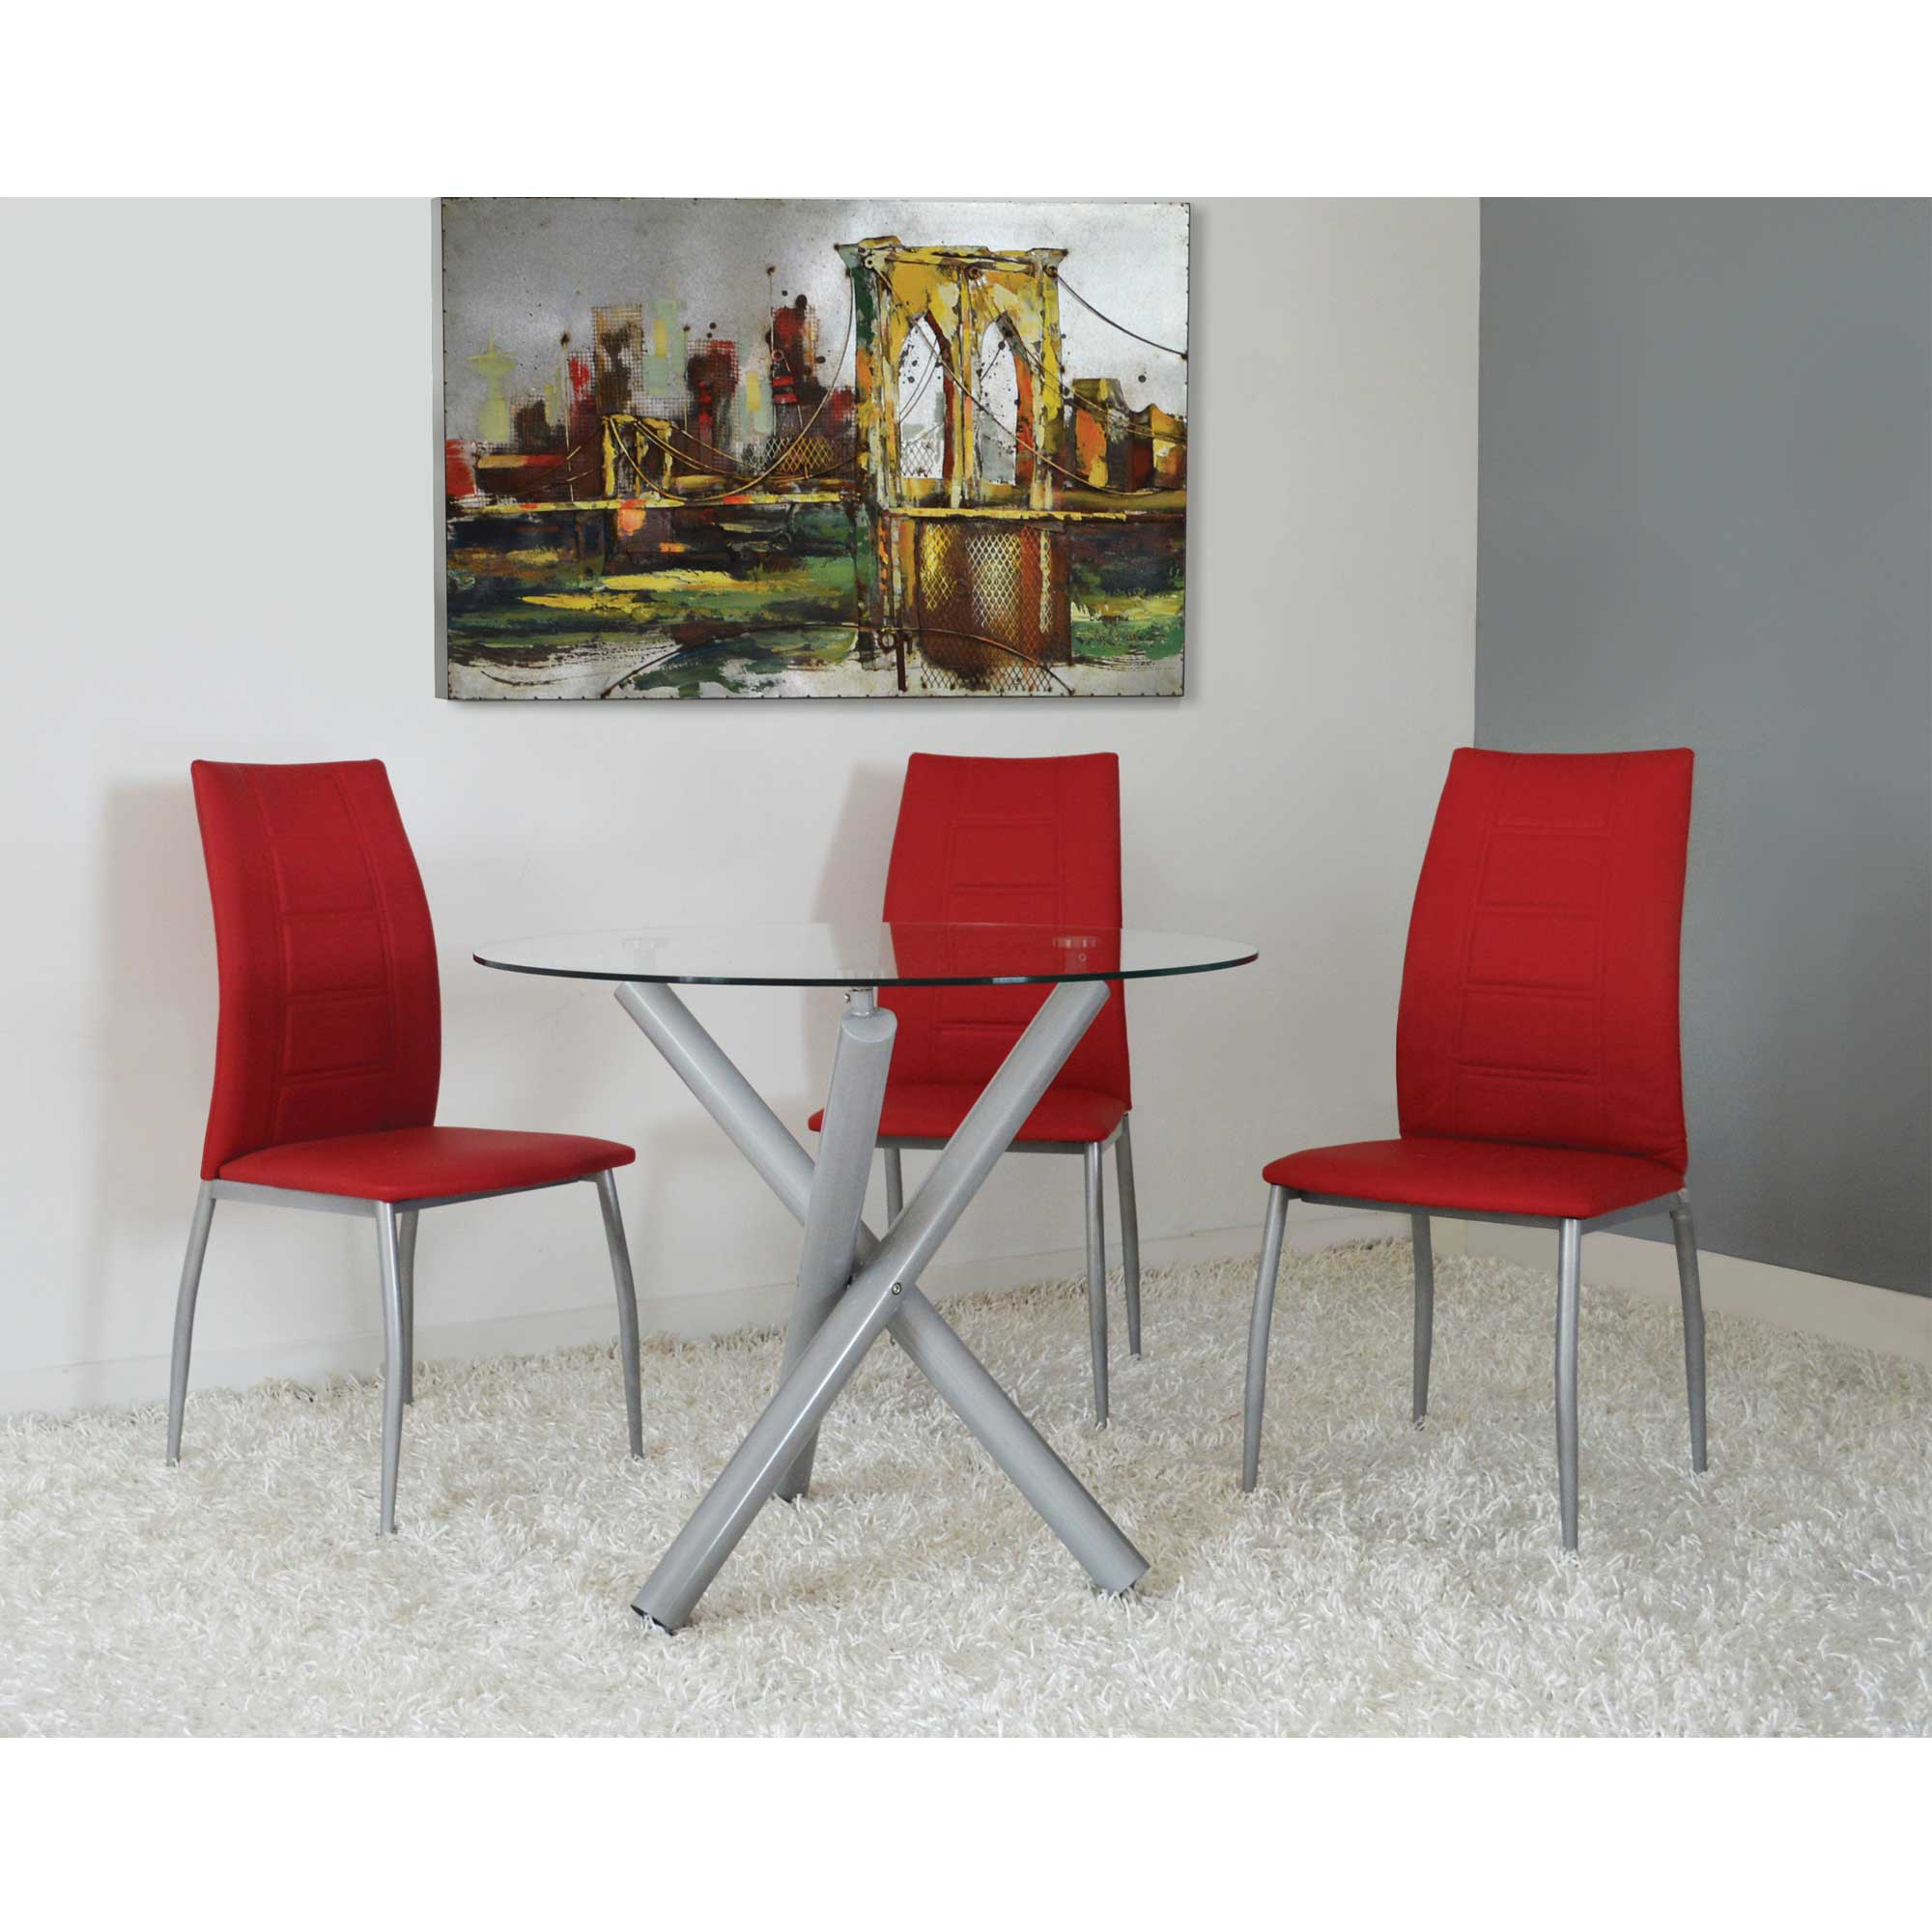 5 PCS Dining Set. Home · Dining Room · Dining Tables; 5 PCS Dining Set